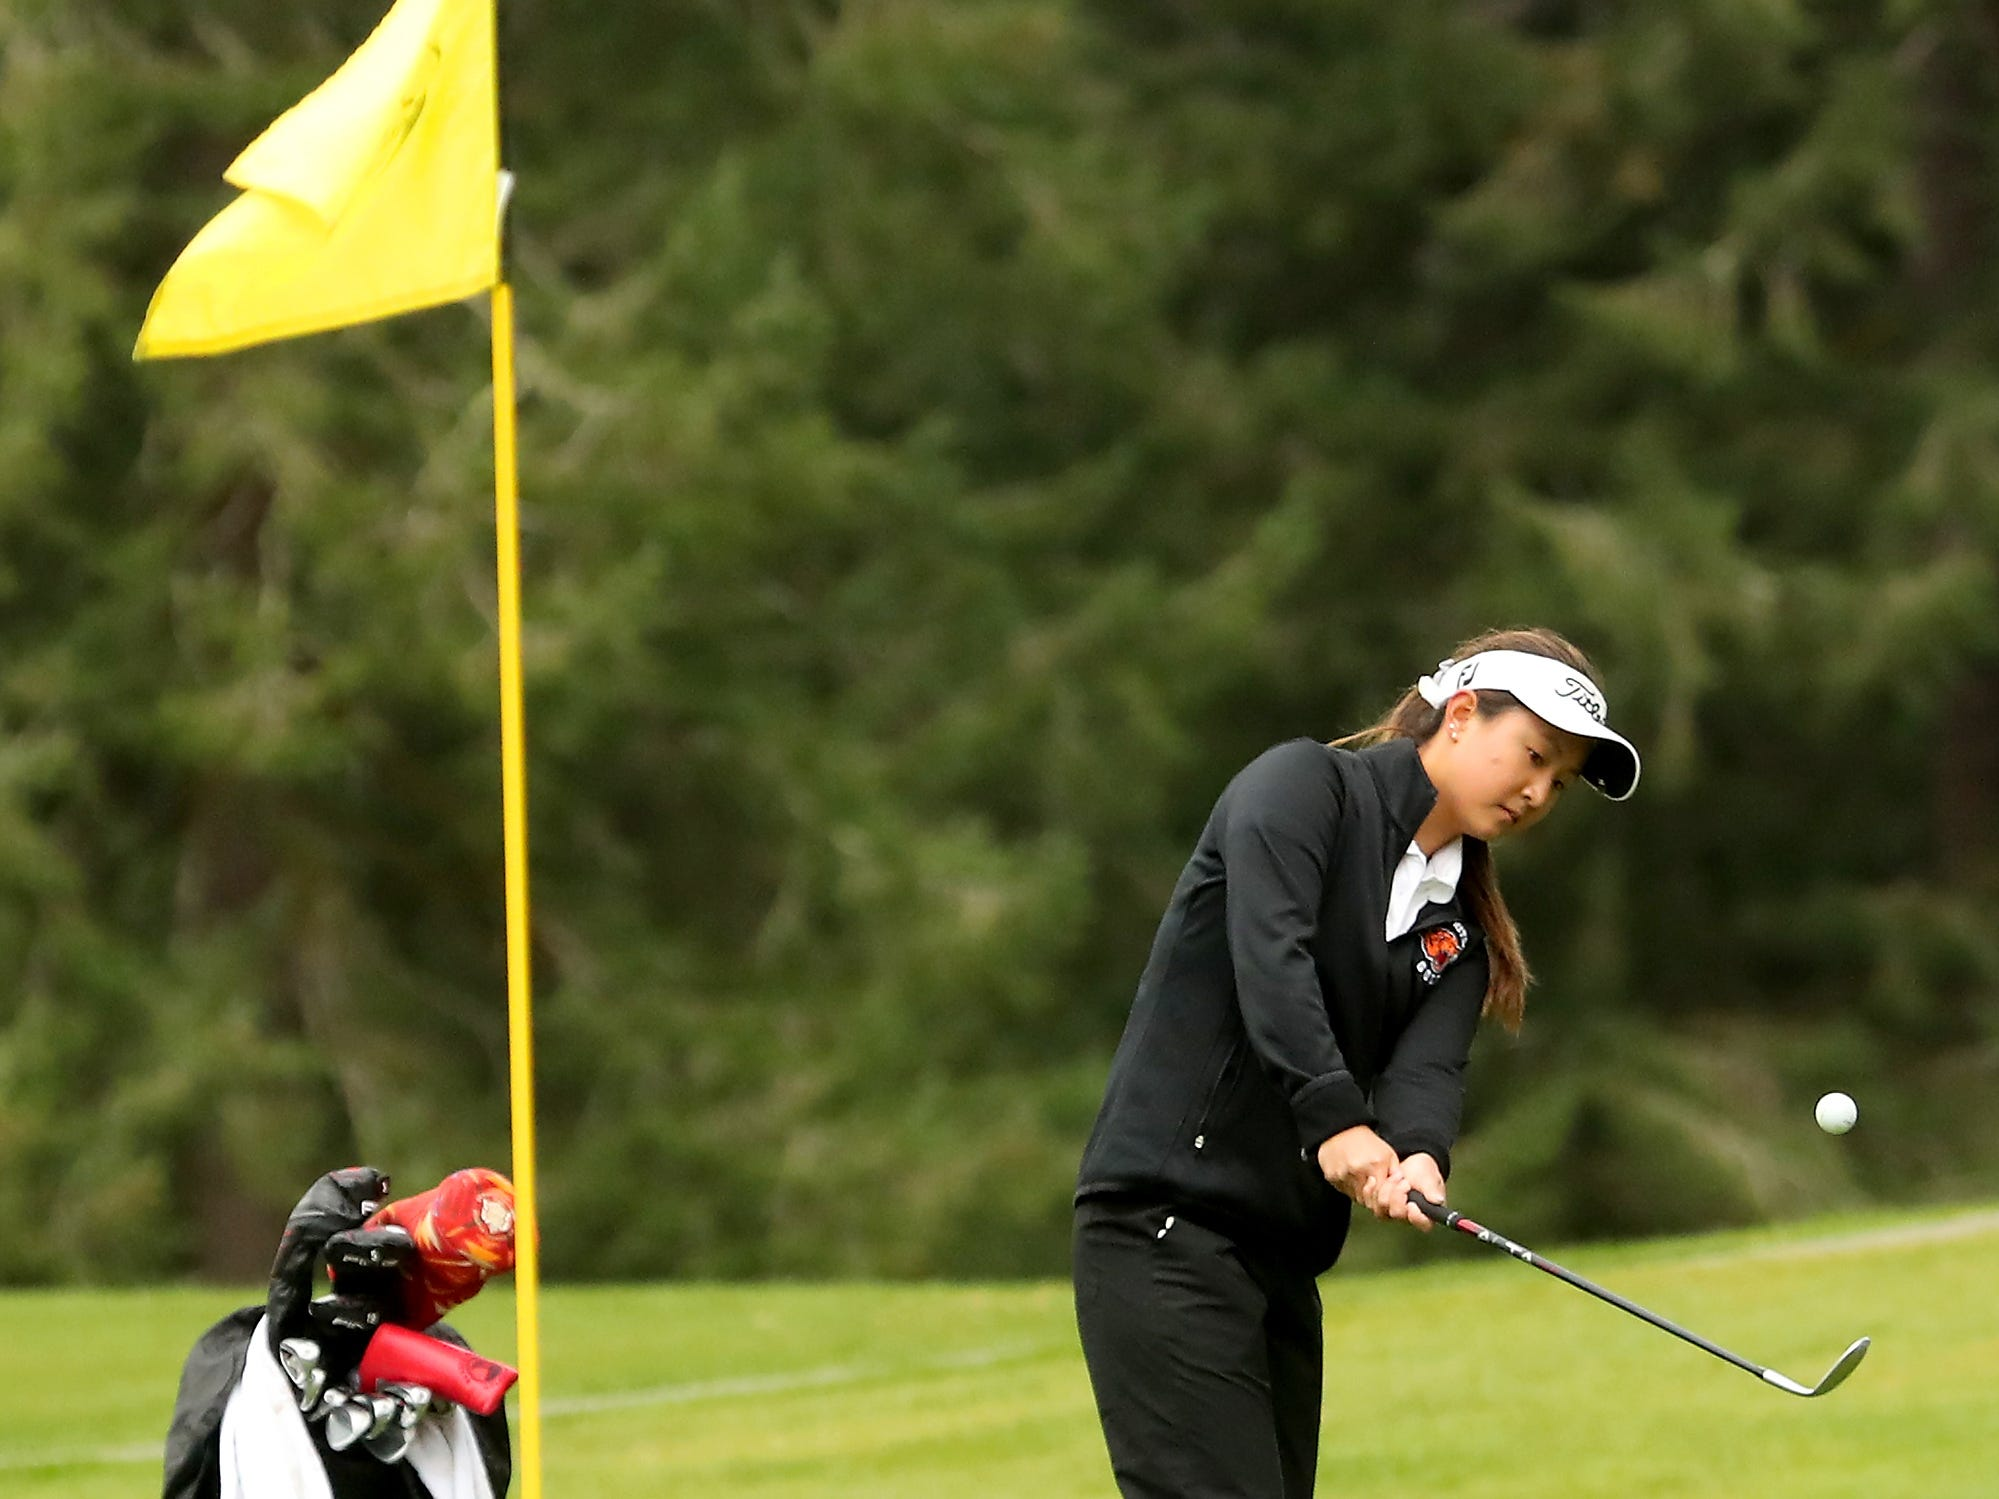 Central Kitsap golfer Brittany Kwon chips a shot onto the green during a match against Shelton at Gold Mountain Golf Club on Tuesday, April 16, 2019.